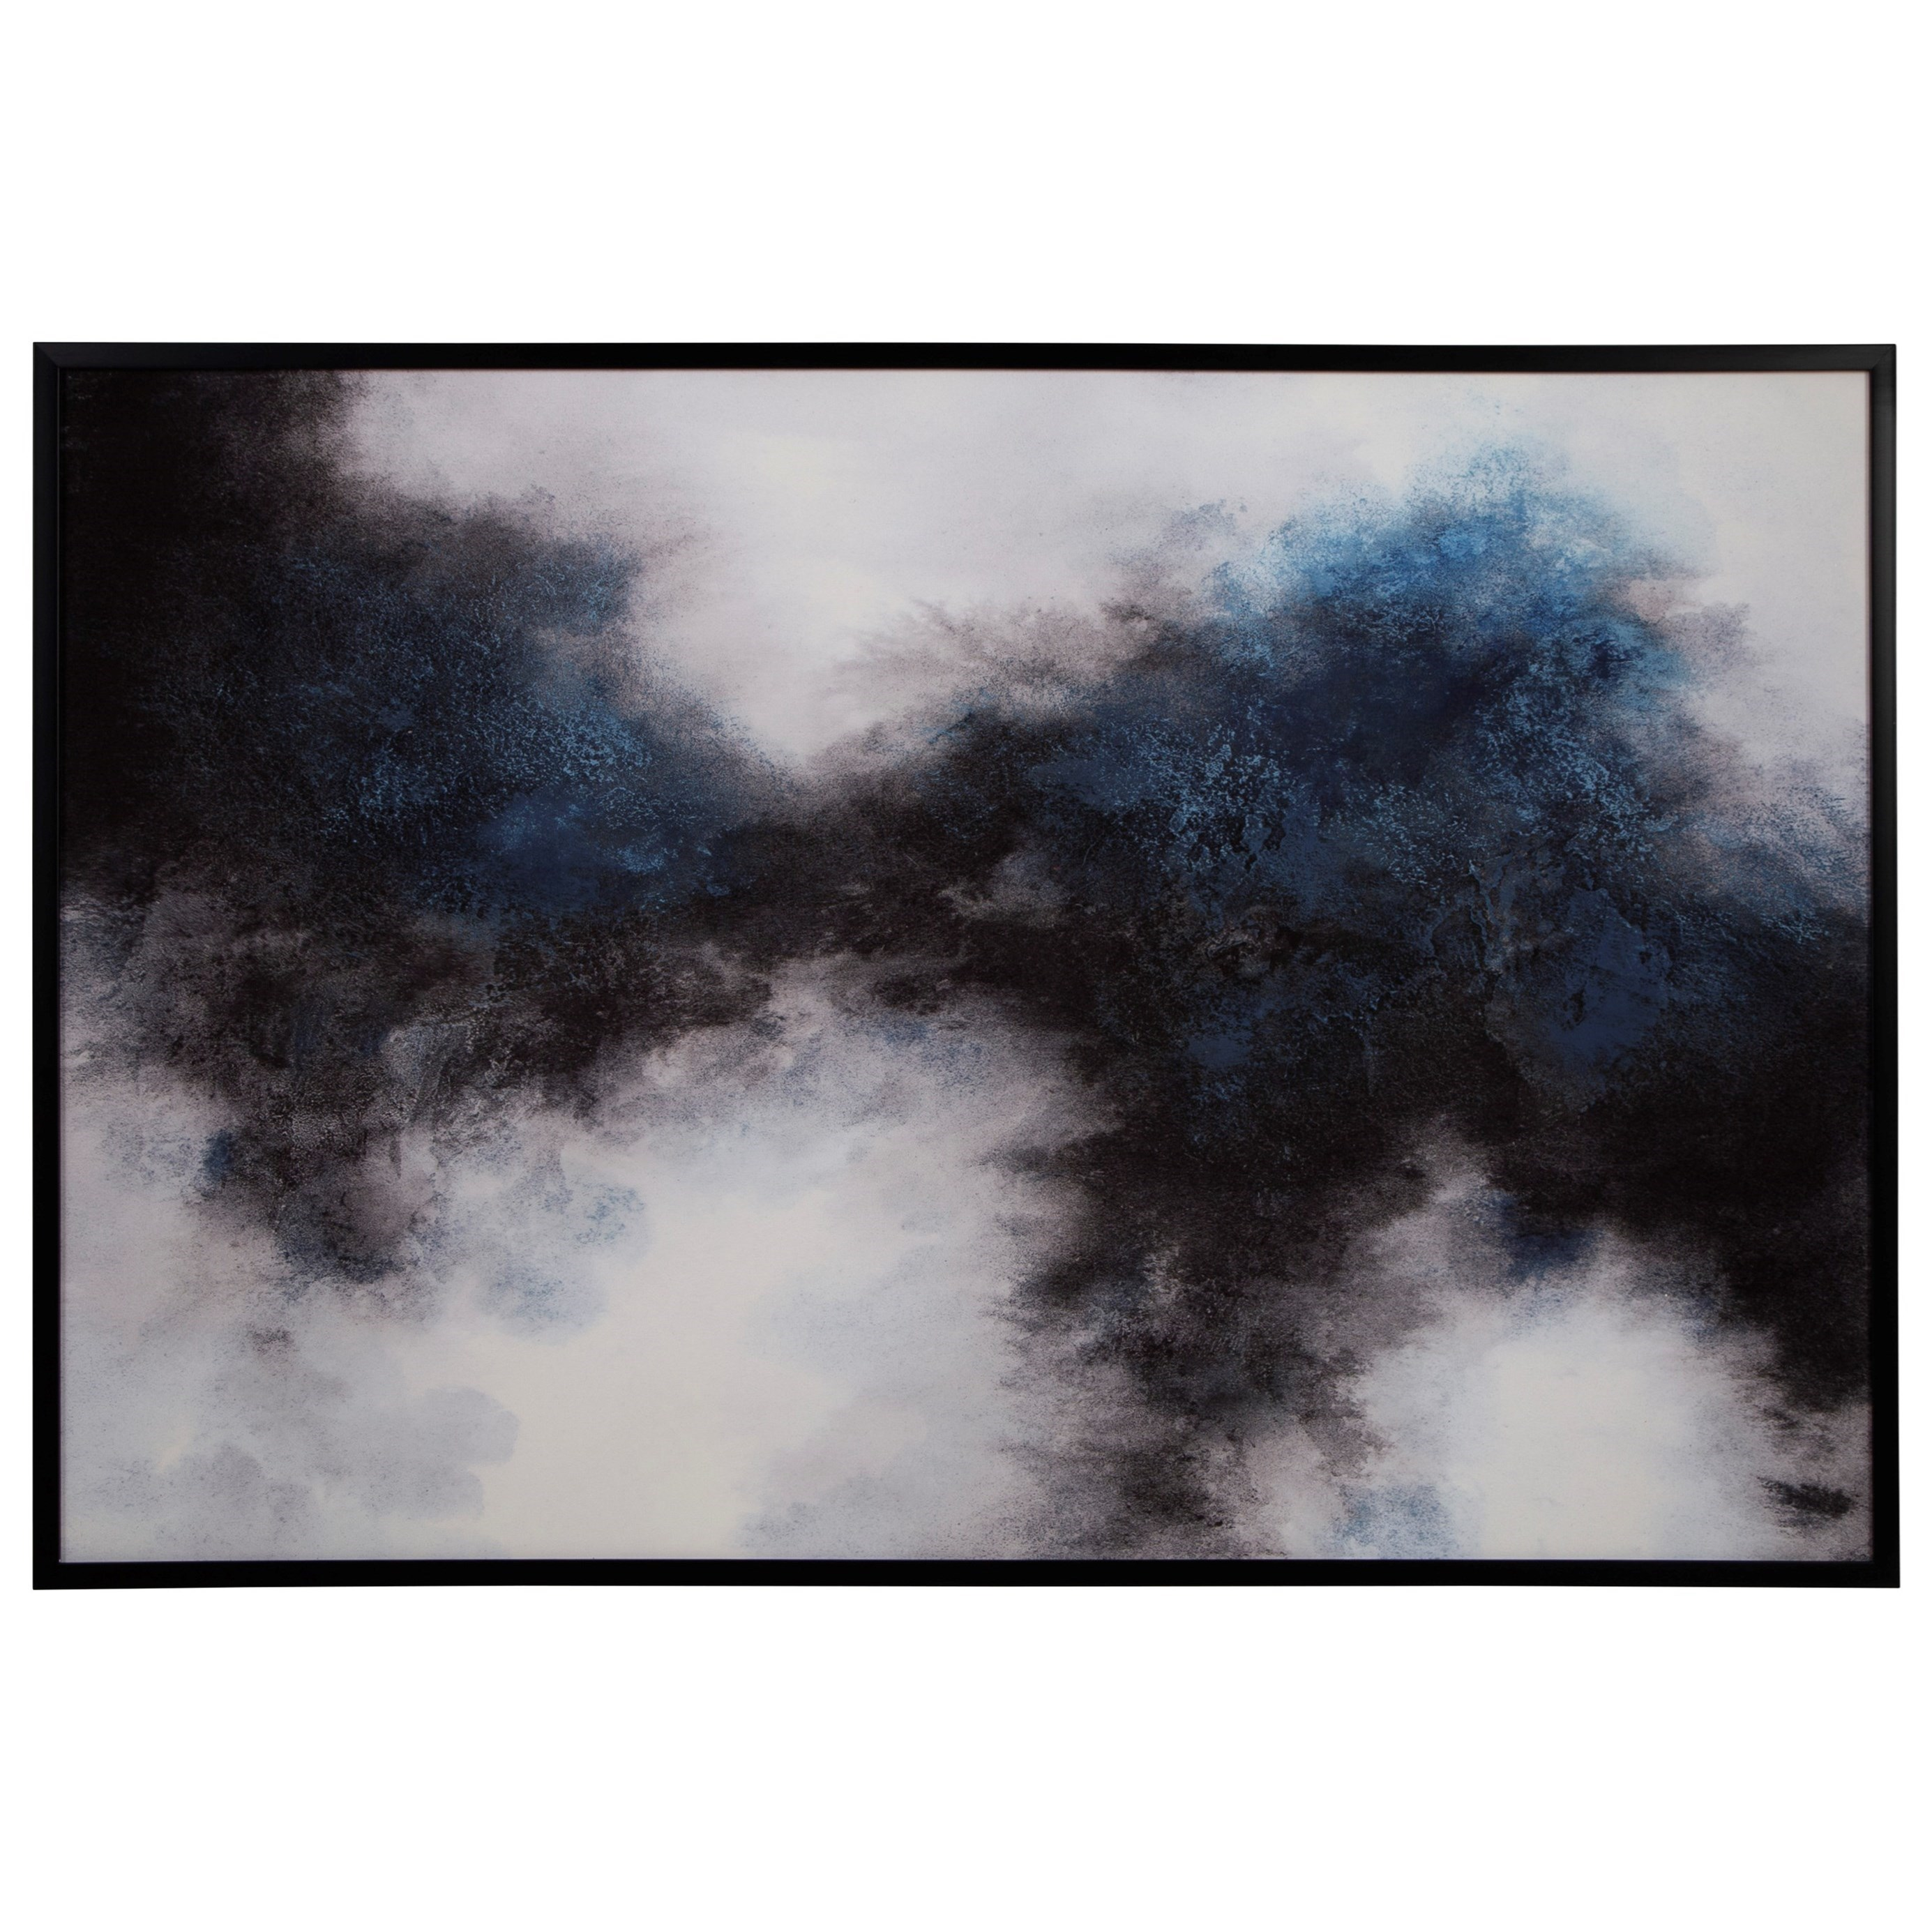 Wall Art Bellecott Black/White/Blue Wall Art by Signature Design by Ashley at Standard Furniture